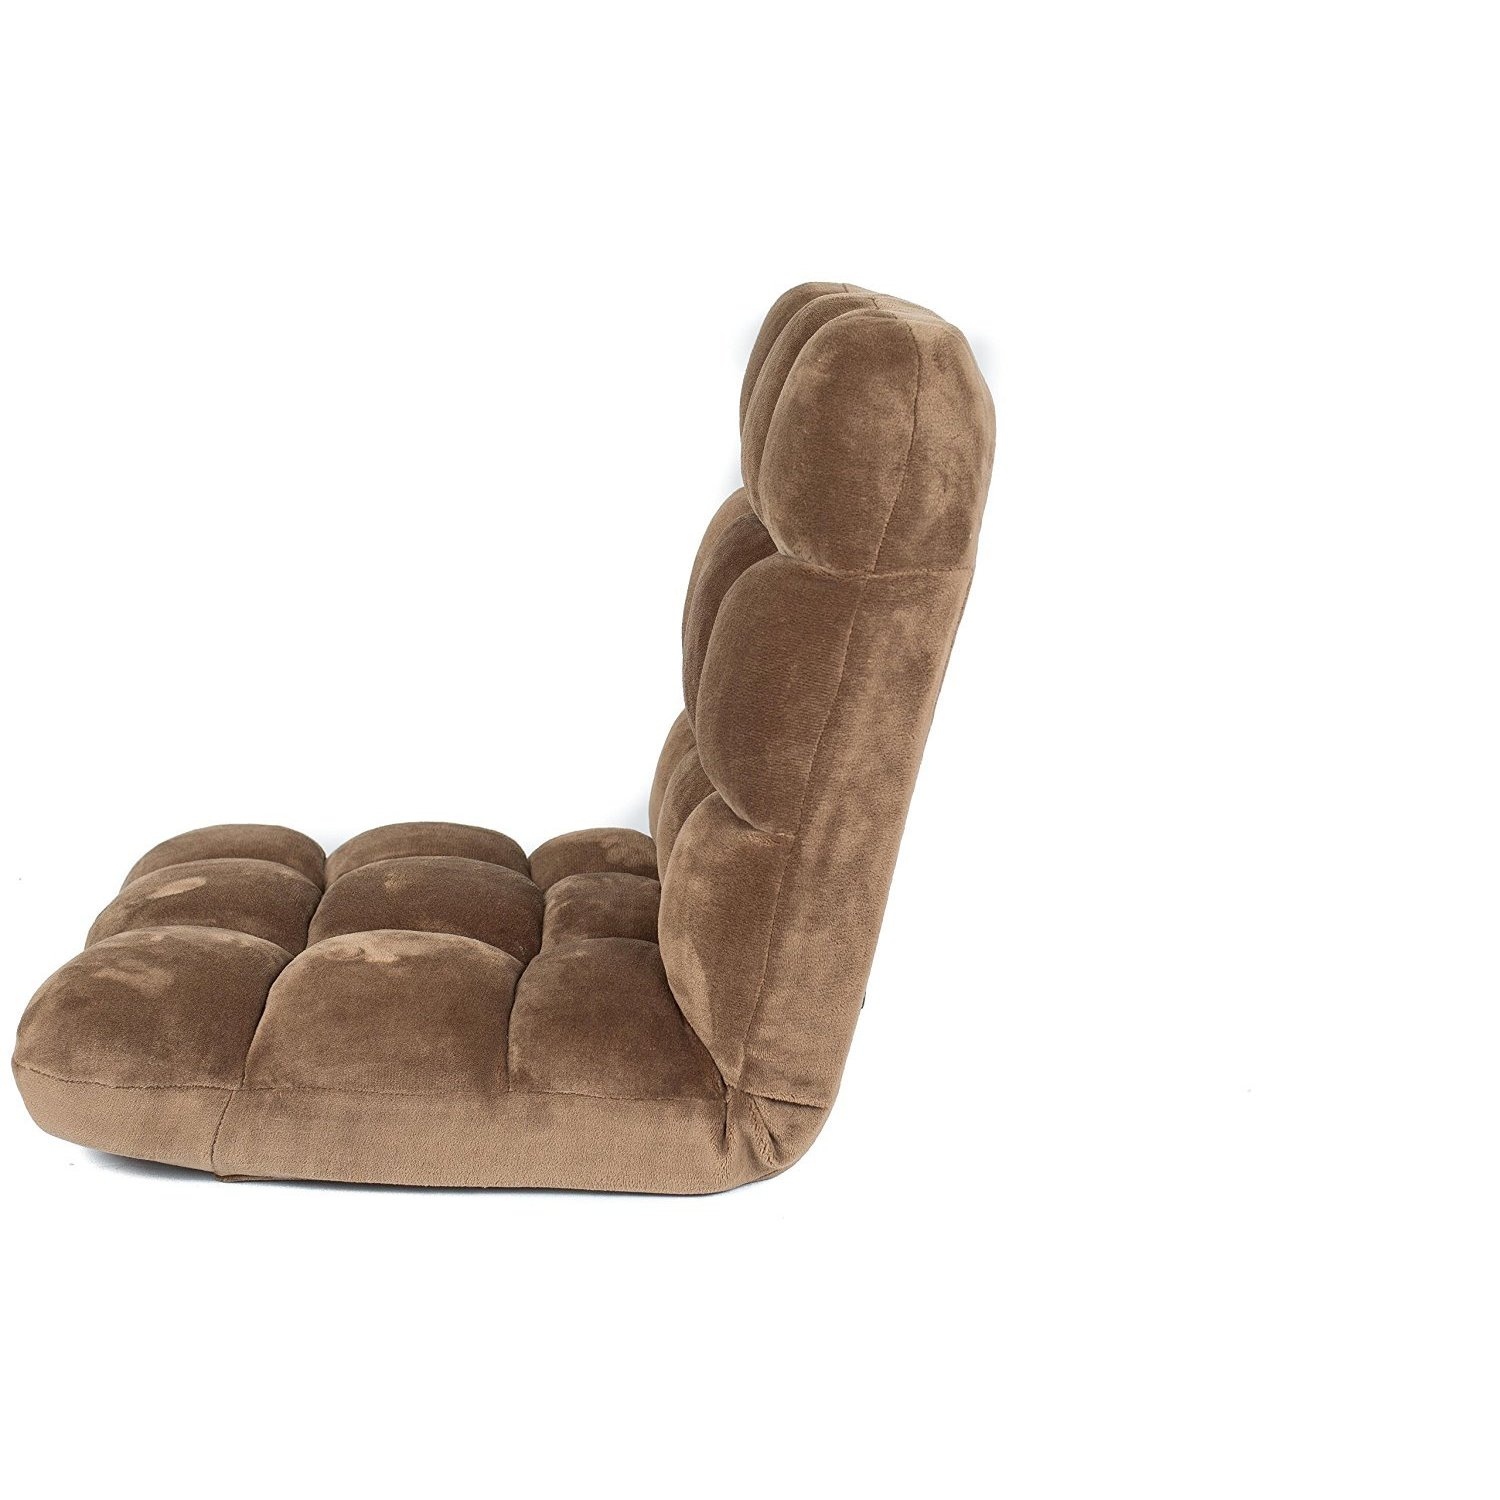 Shop BirdRock Home Brown Microfiber Memory Foam Plush Floor And Gaming Chair    Free Shipping Today   Overstock.com   12853482